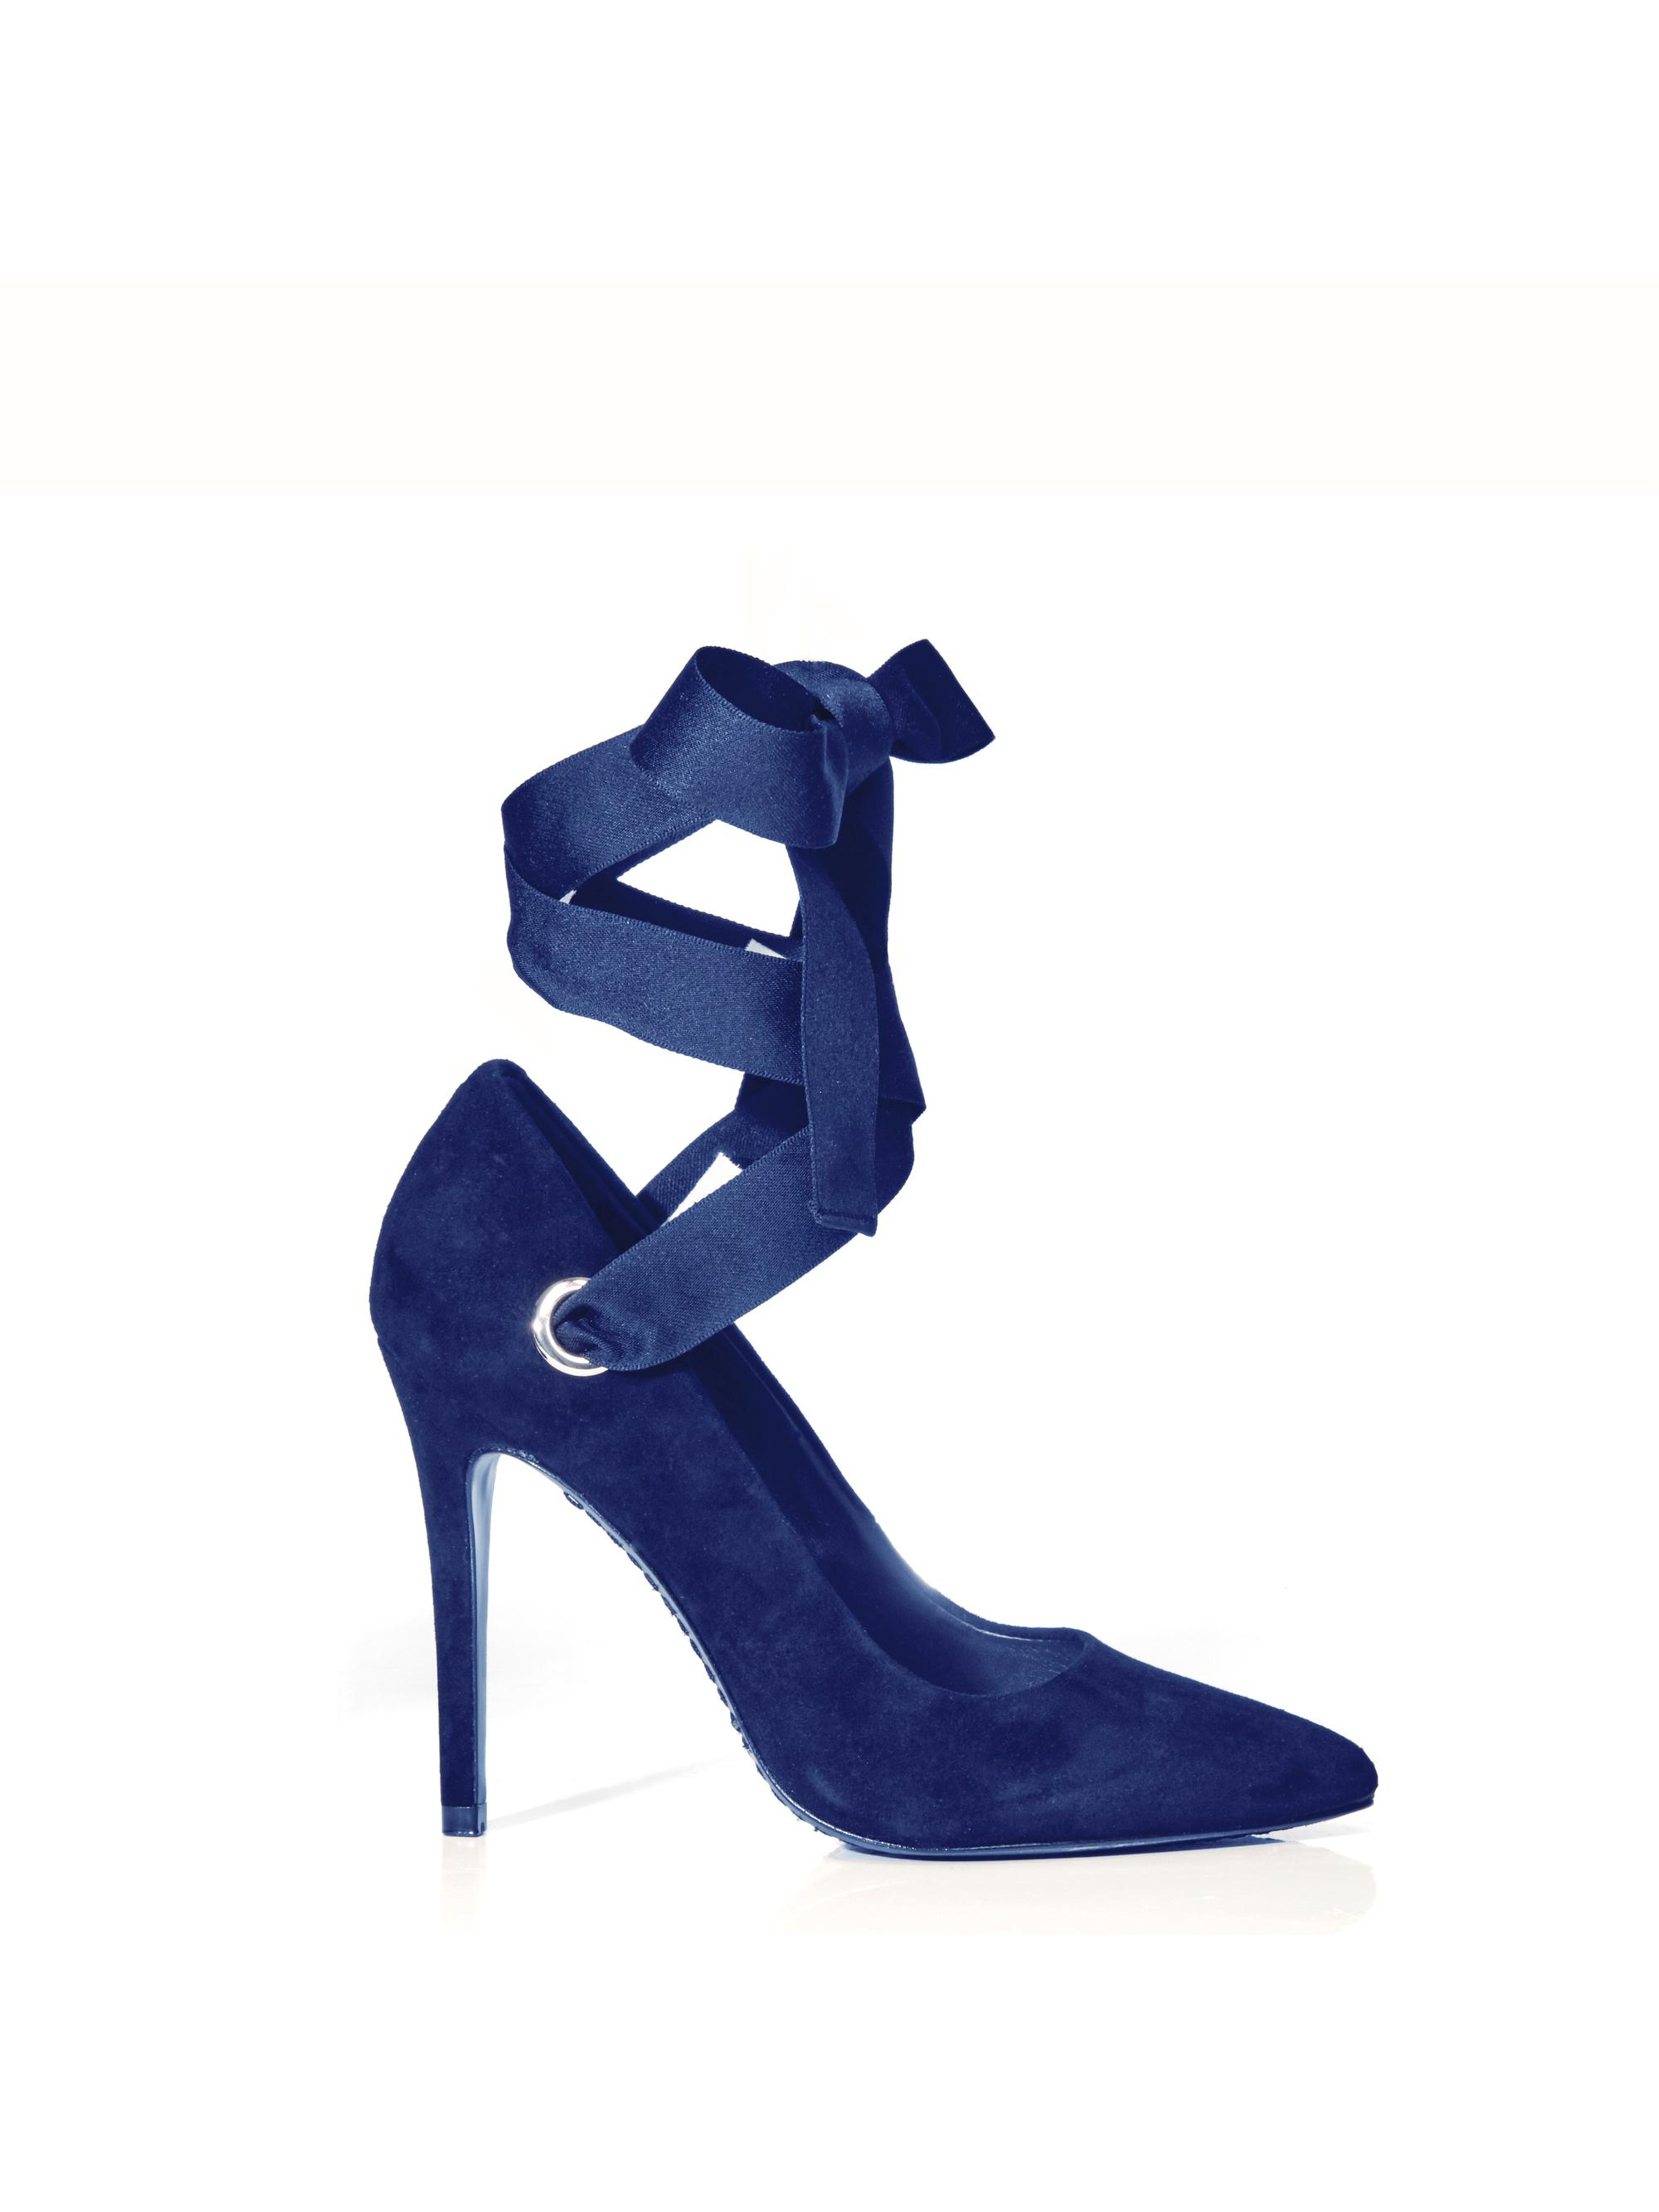 56d61868868 Gallery. Women s Spiked Shoes Women s Patent Leather ...